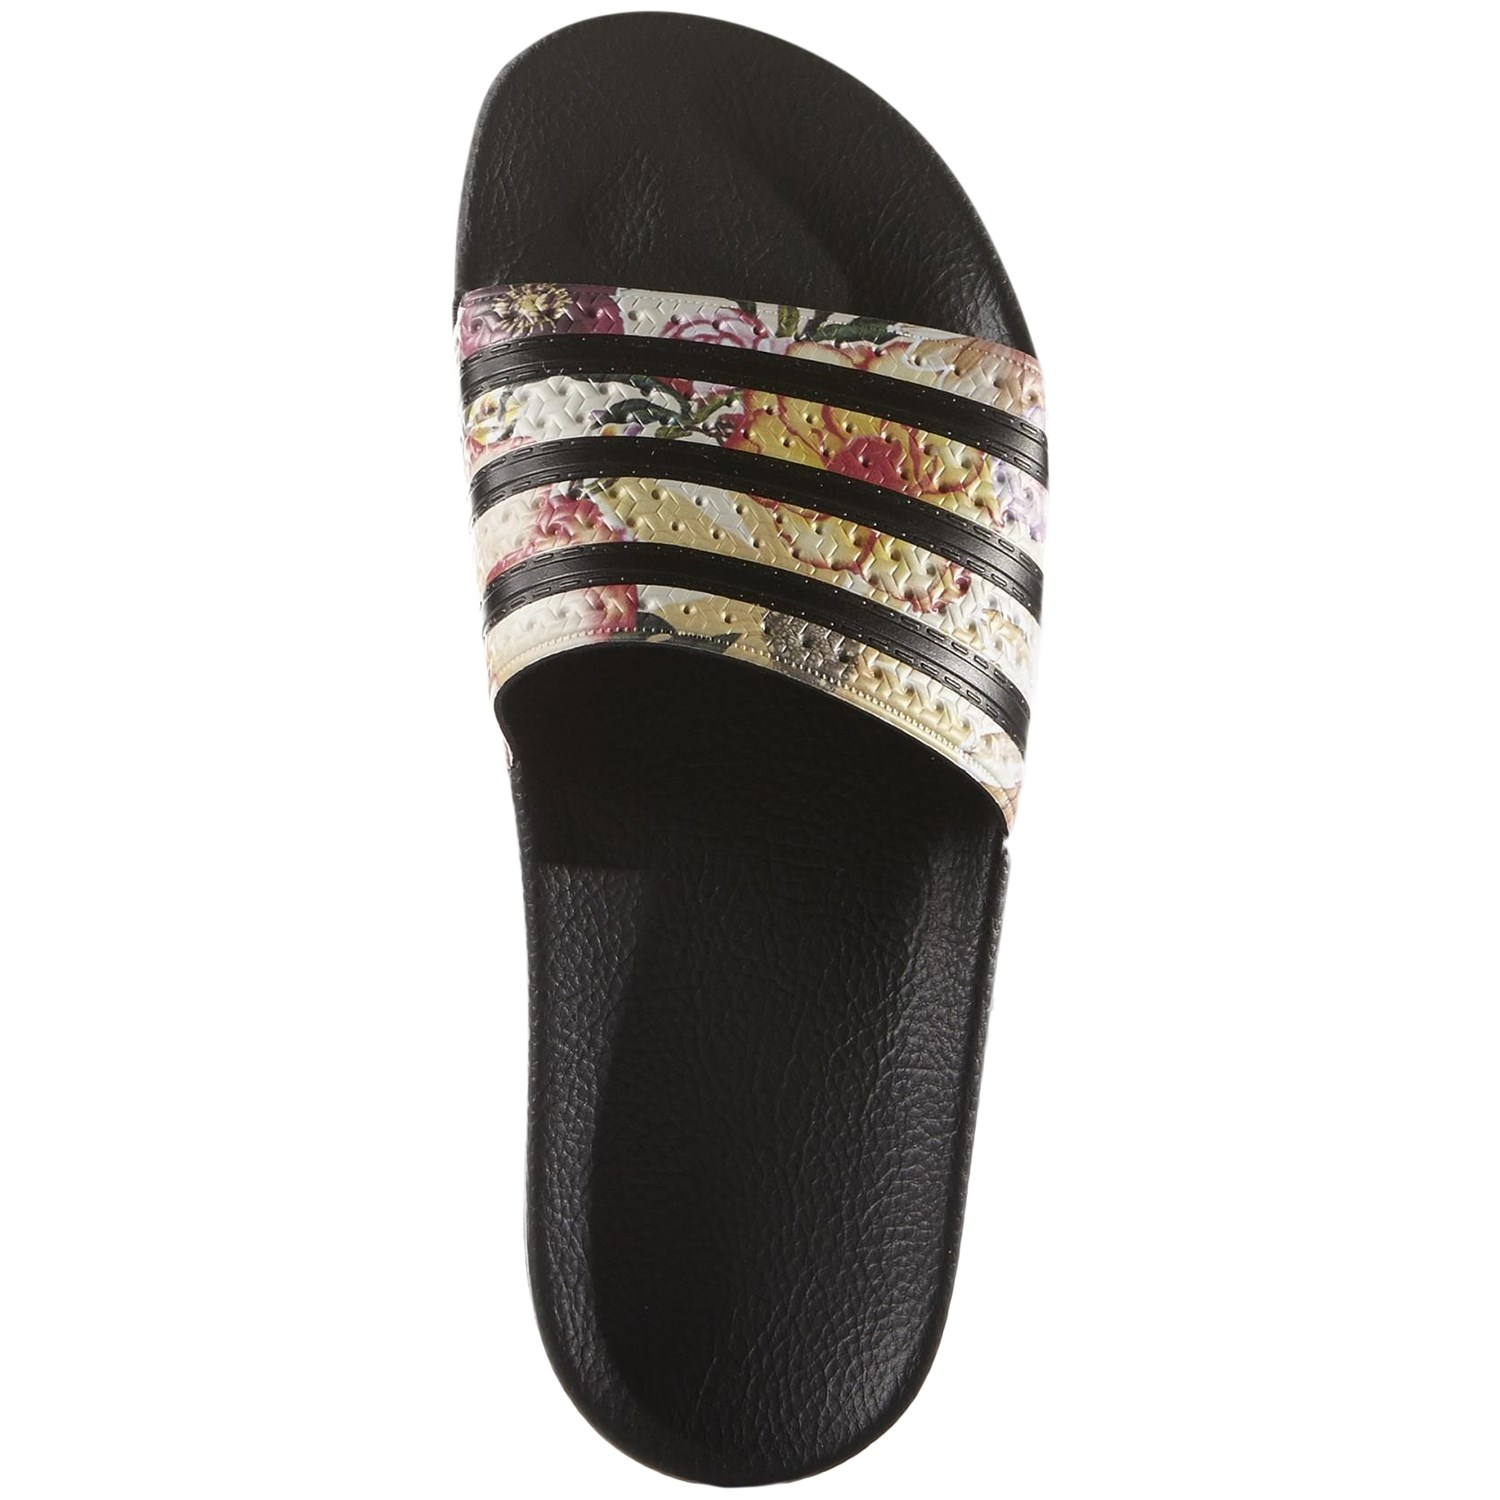 official photos d2c9b 4e880 Adidas Originals Adilette Slide Sandals - Womens  evo